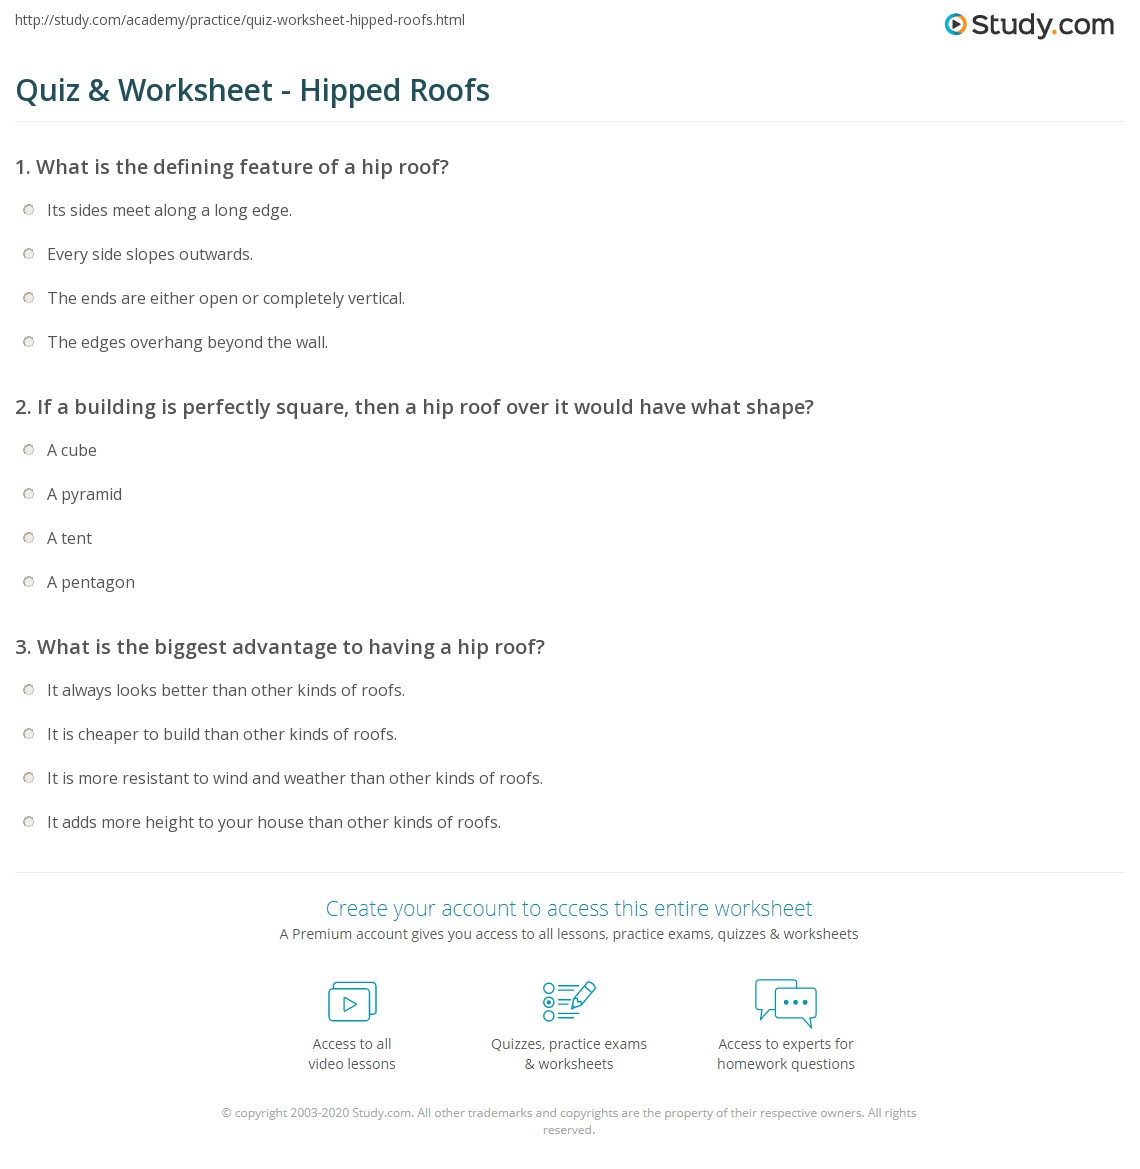 Quiz Worksheet Hipped Roofs Study Com